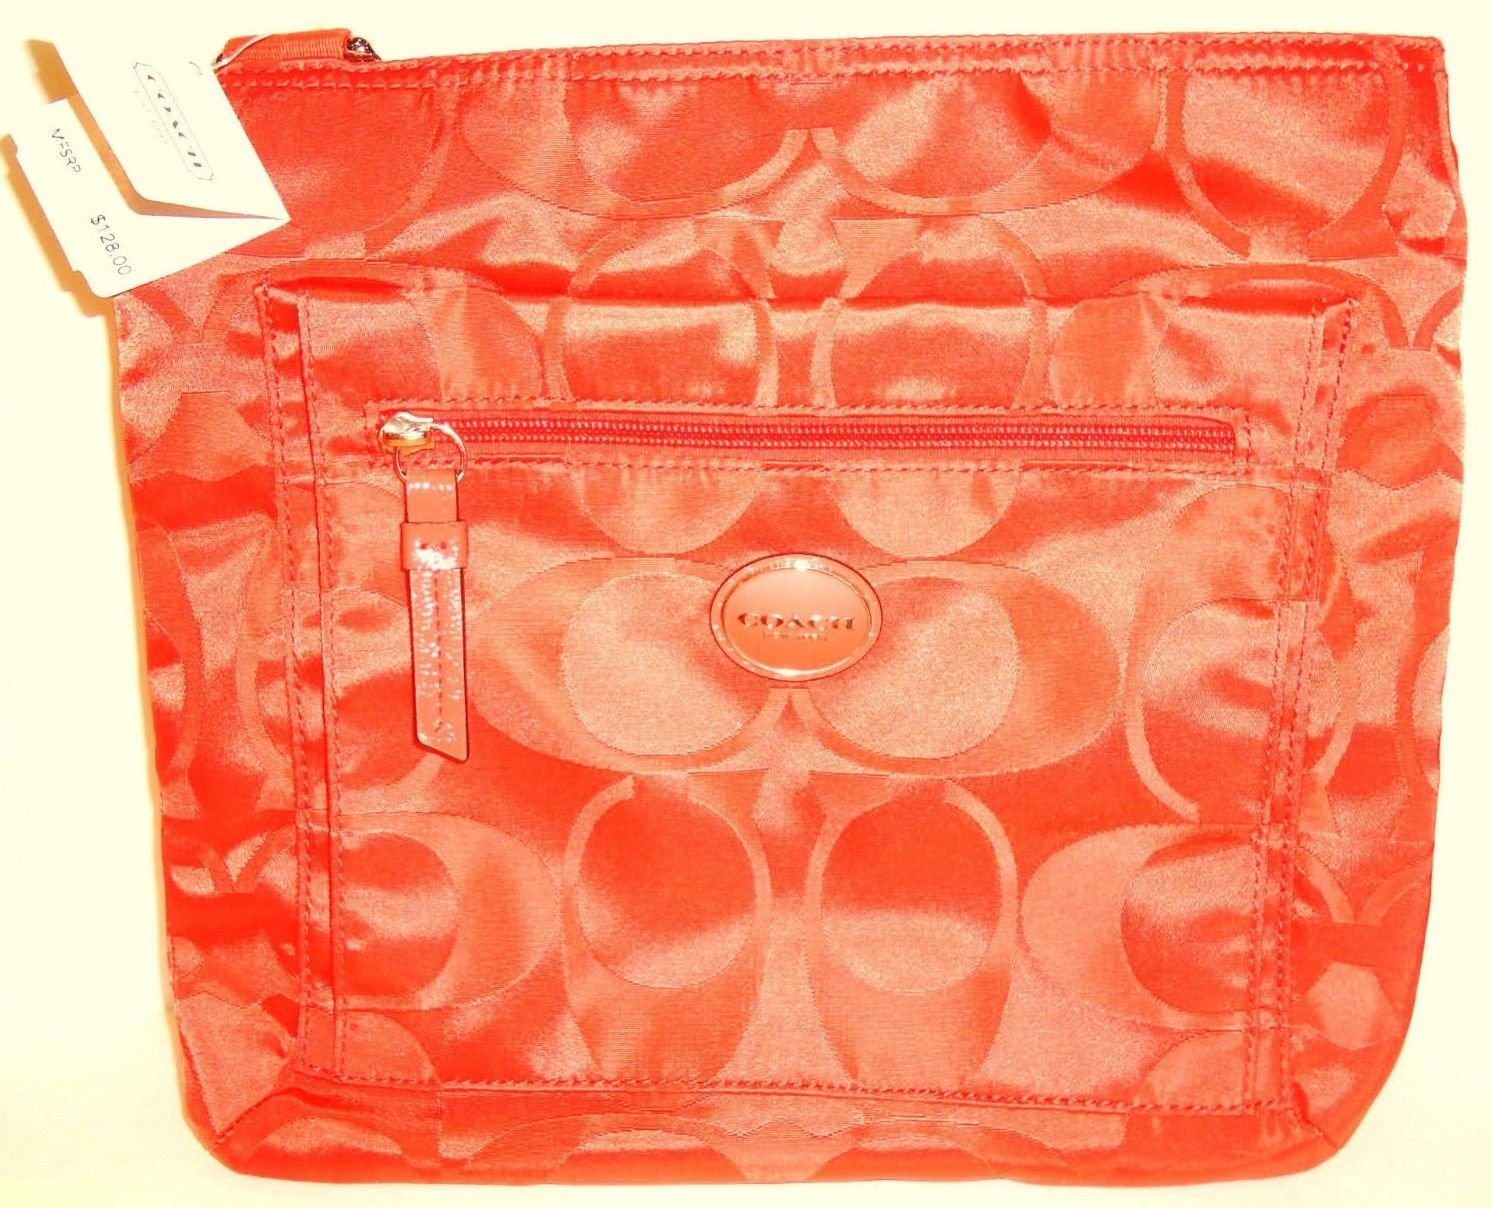 COACH - SIGNATURE - HOT - ORANGE - FILE - BAG - PURSE - LEATHER - NYLON - NEW